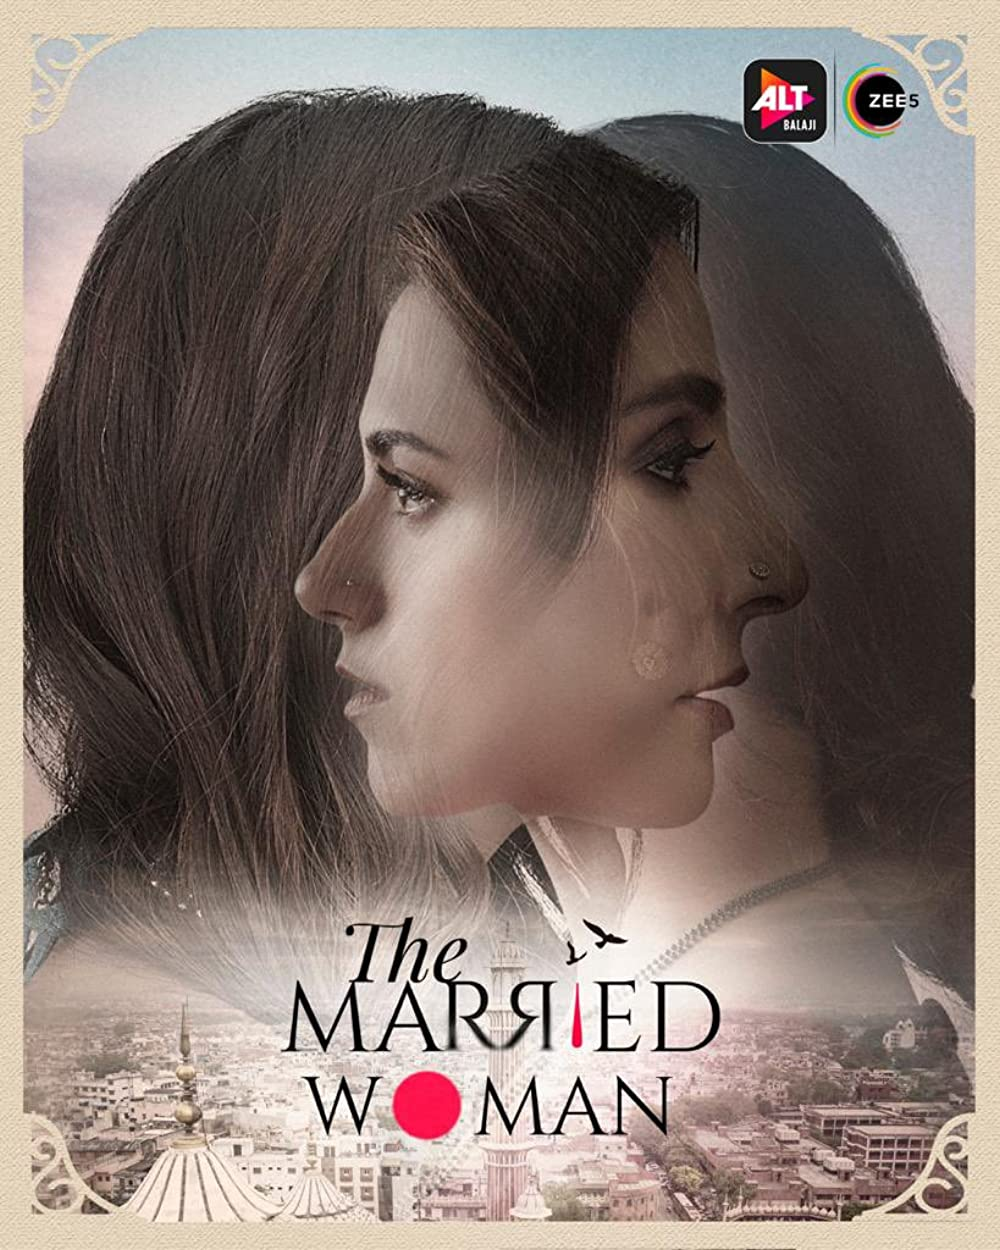 The Married Woman 2021 S01 Hindi Complete ALTBalaji Web Series 720p HDRip 950MB Download